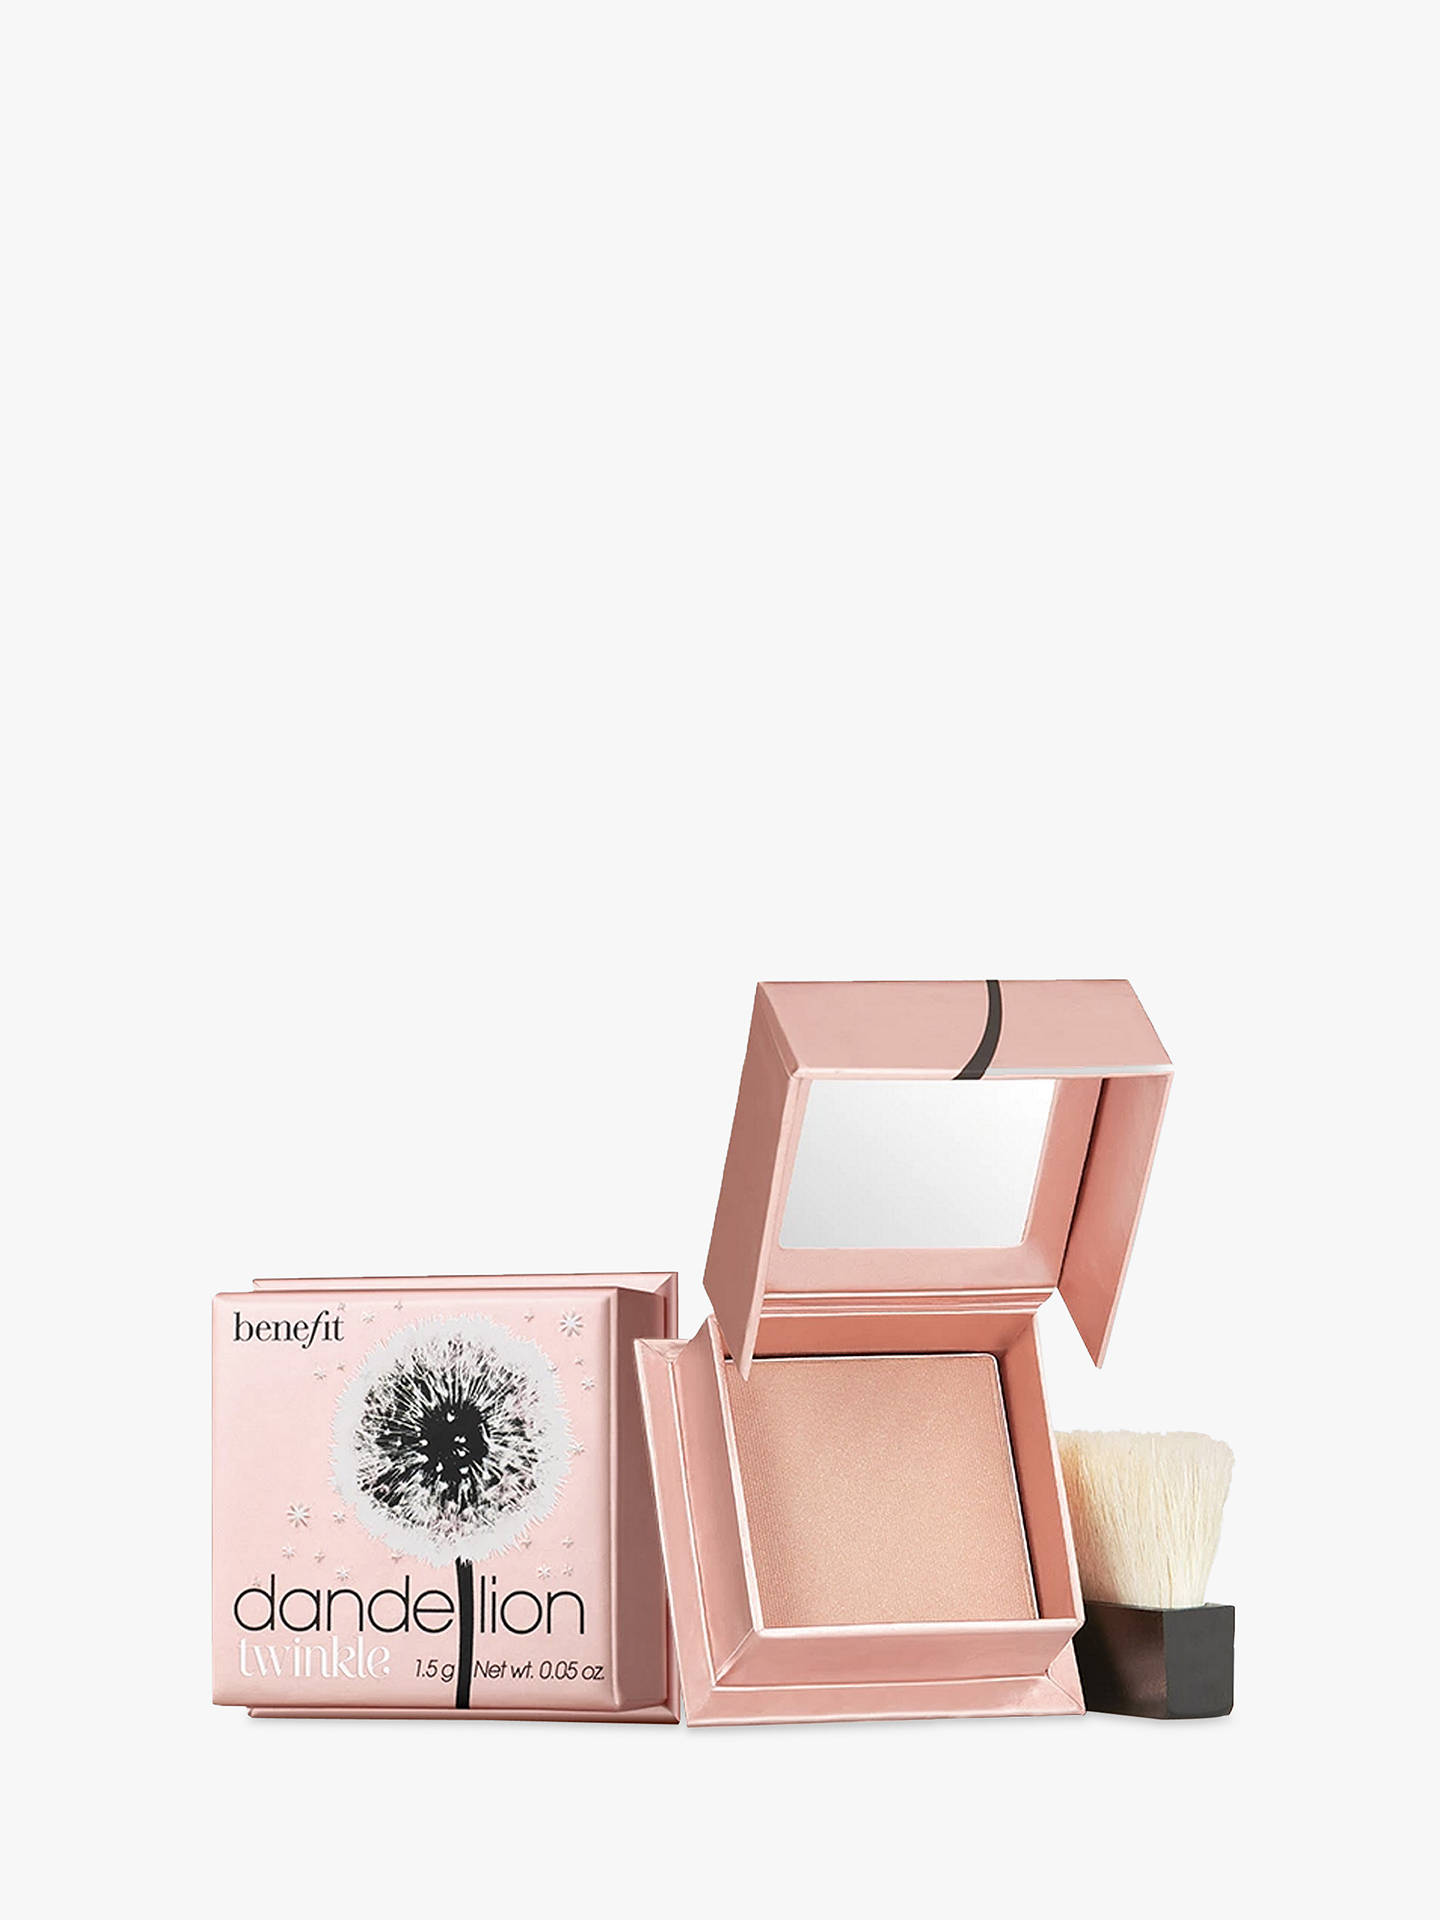 Buy Benefit Dandelion Twinkle Blusher Travel Sized Mini, 1.5g Online at johnlewis.com